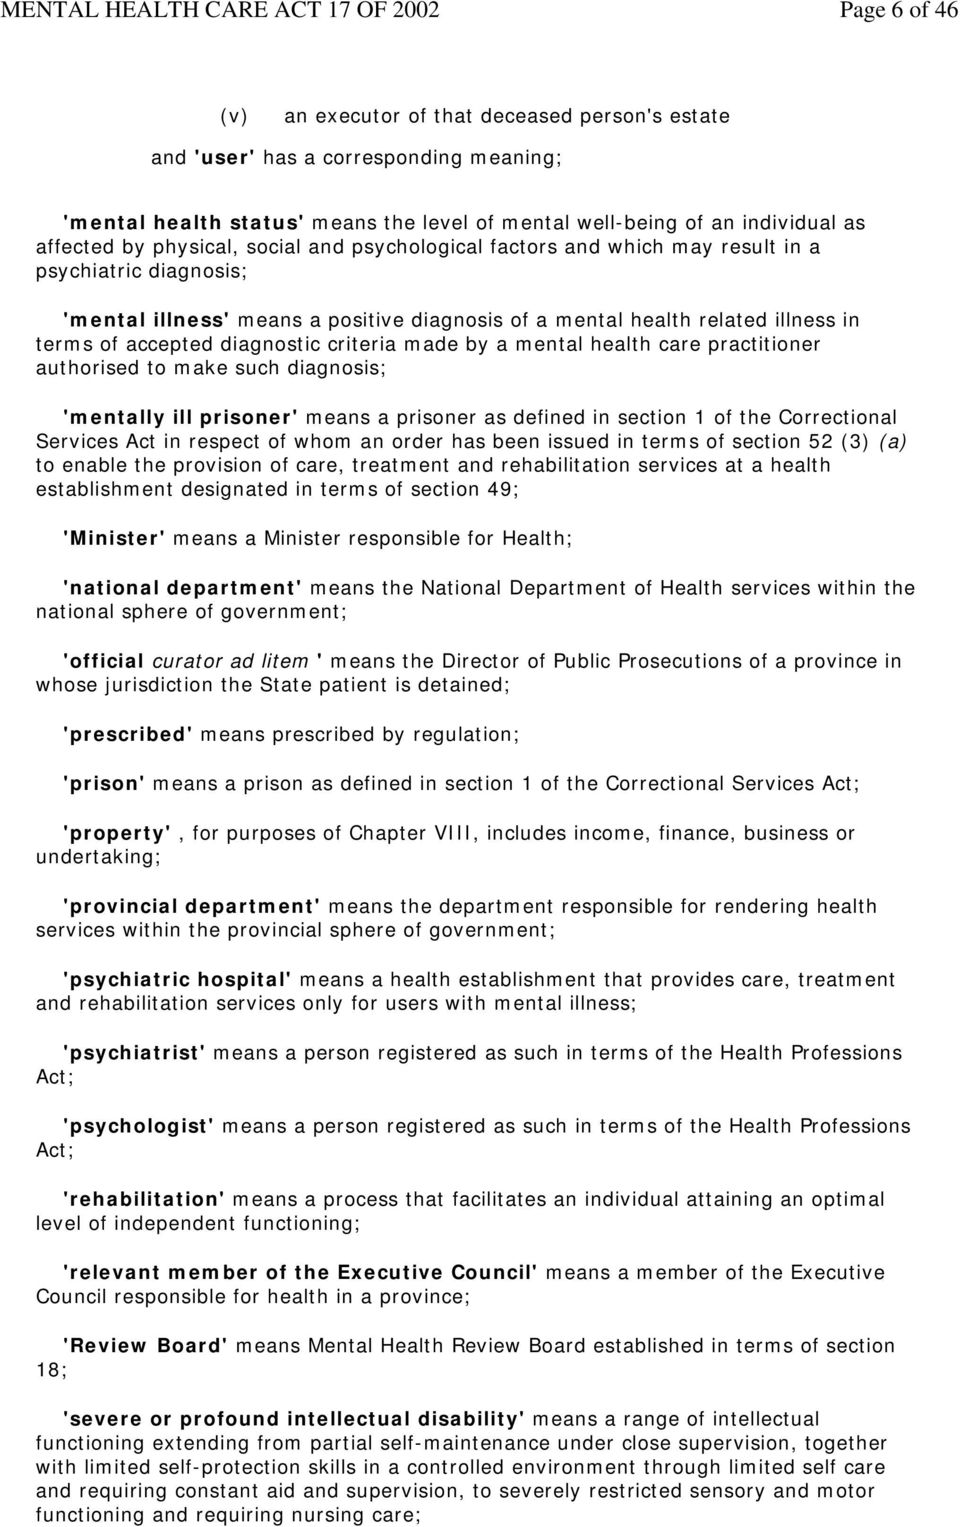 diagnostic criteria made by a mental health care practitioner authorised to make such diagnosis; 'mentally ill prisoner' means a prisoner as defined in section 1 of the Correctional Services Act in